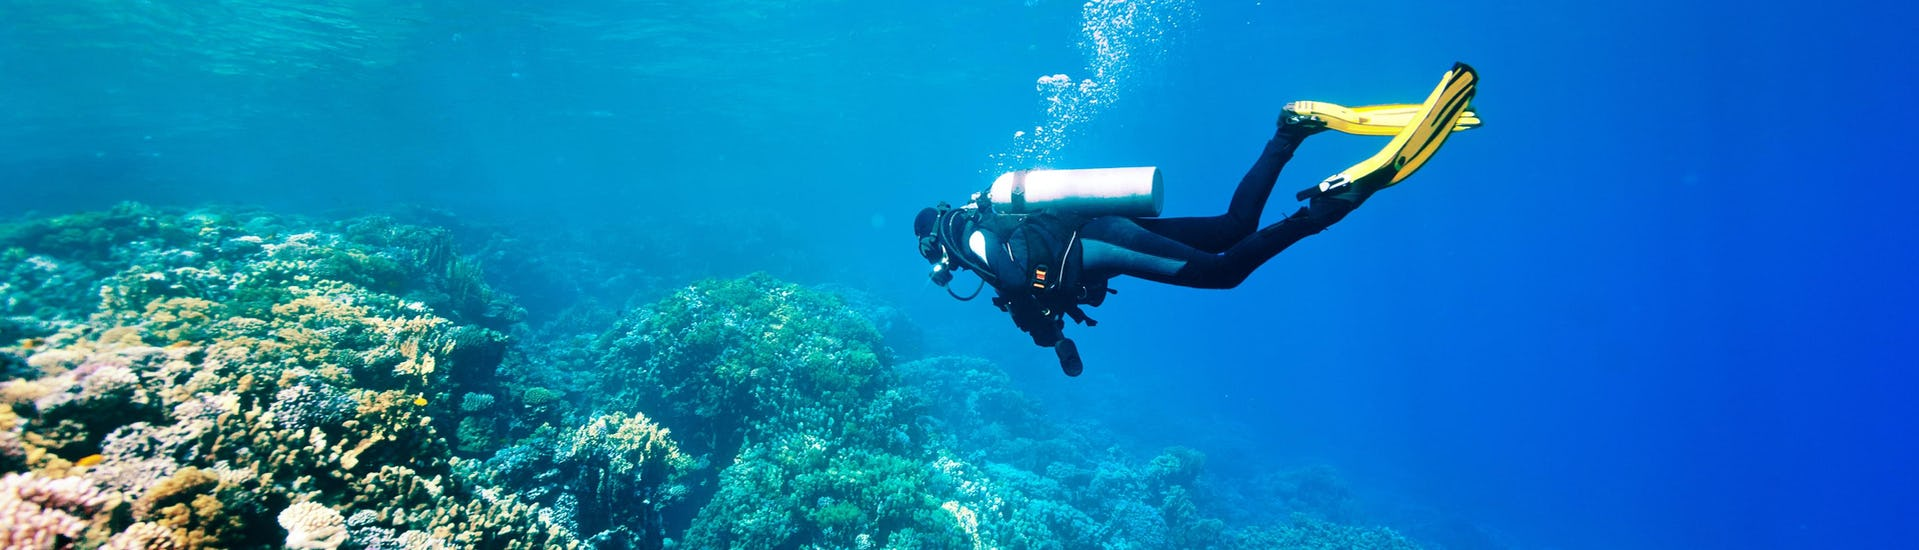 A scuba diver is exploring a reef while scuba diving in the scuba diving destination of St Julian's.